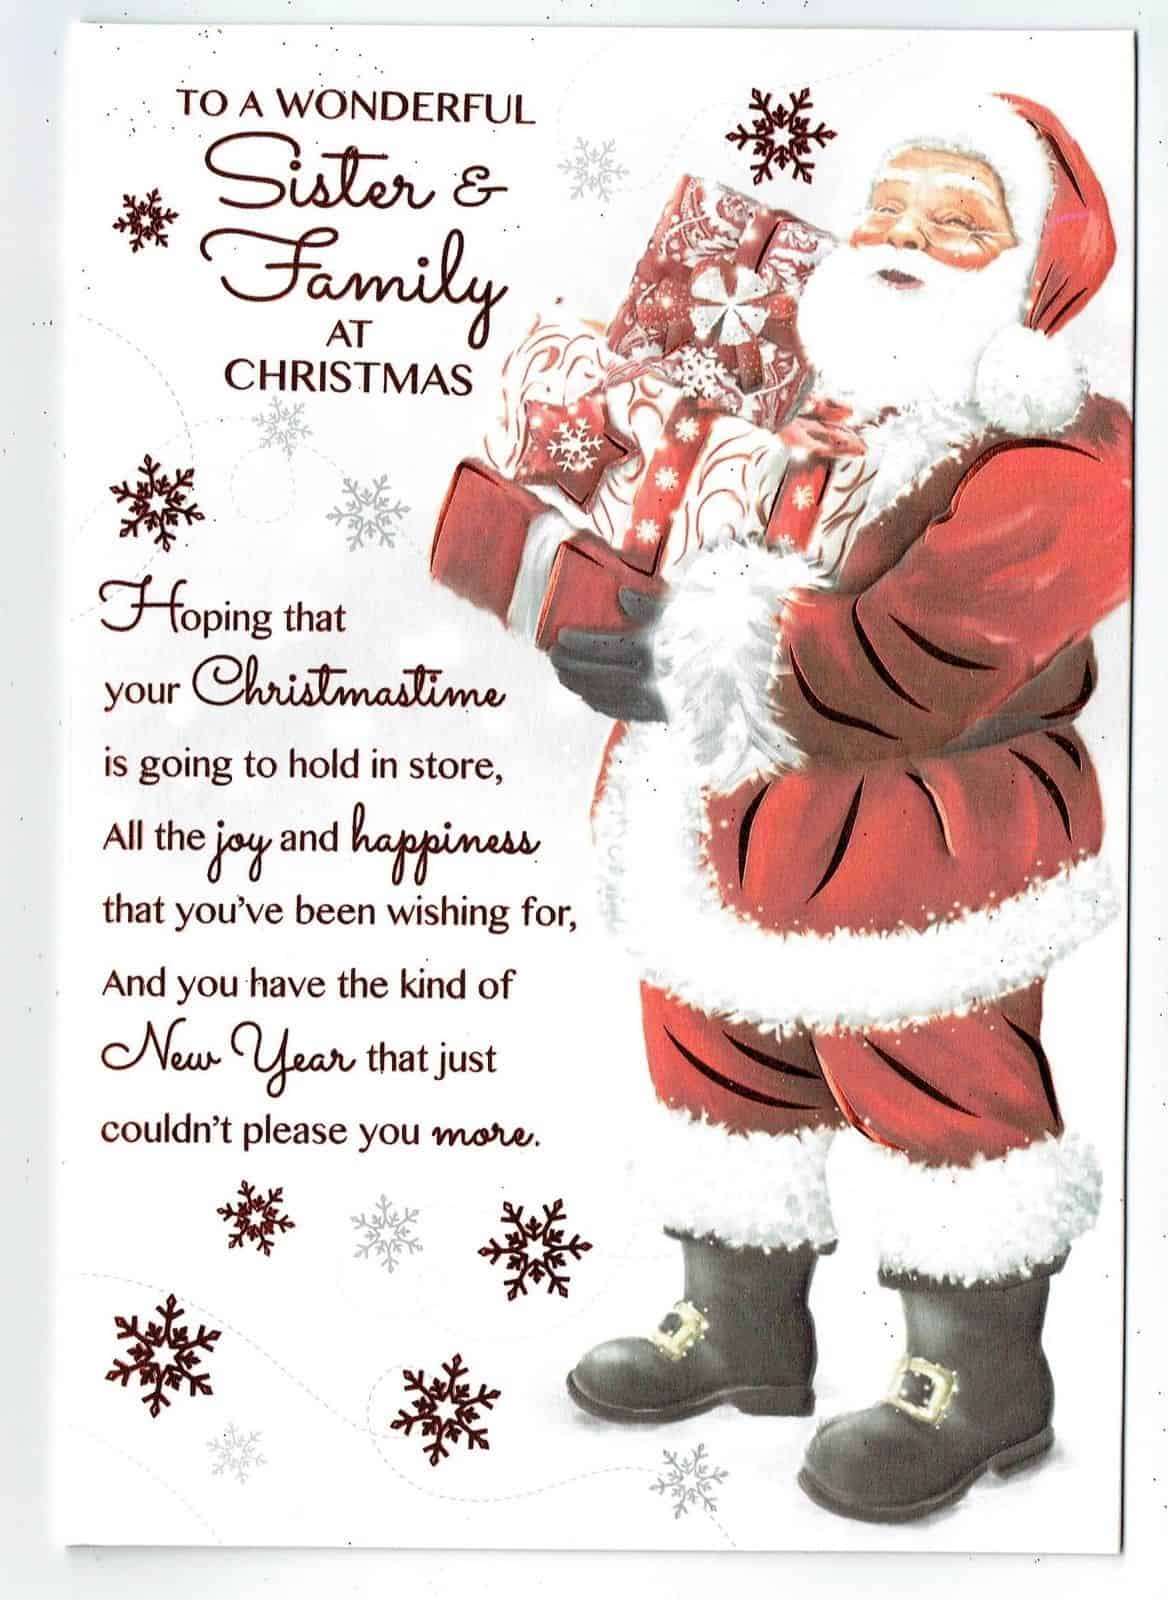 Sister And Family Christmas Card With Father Christmas And Sentiment Verse With Love Gifts Cards